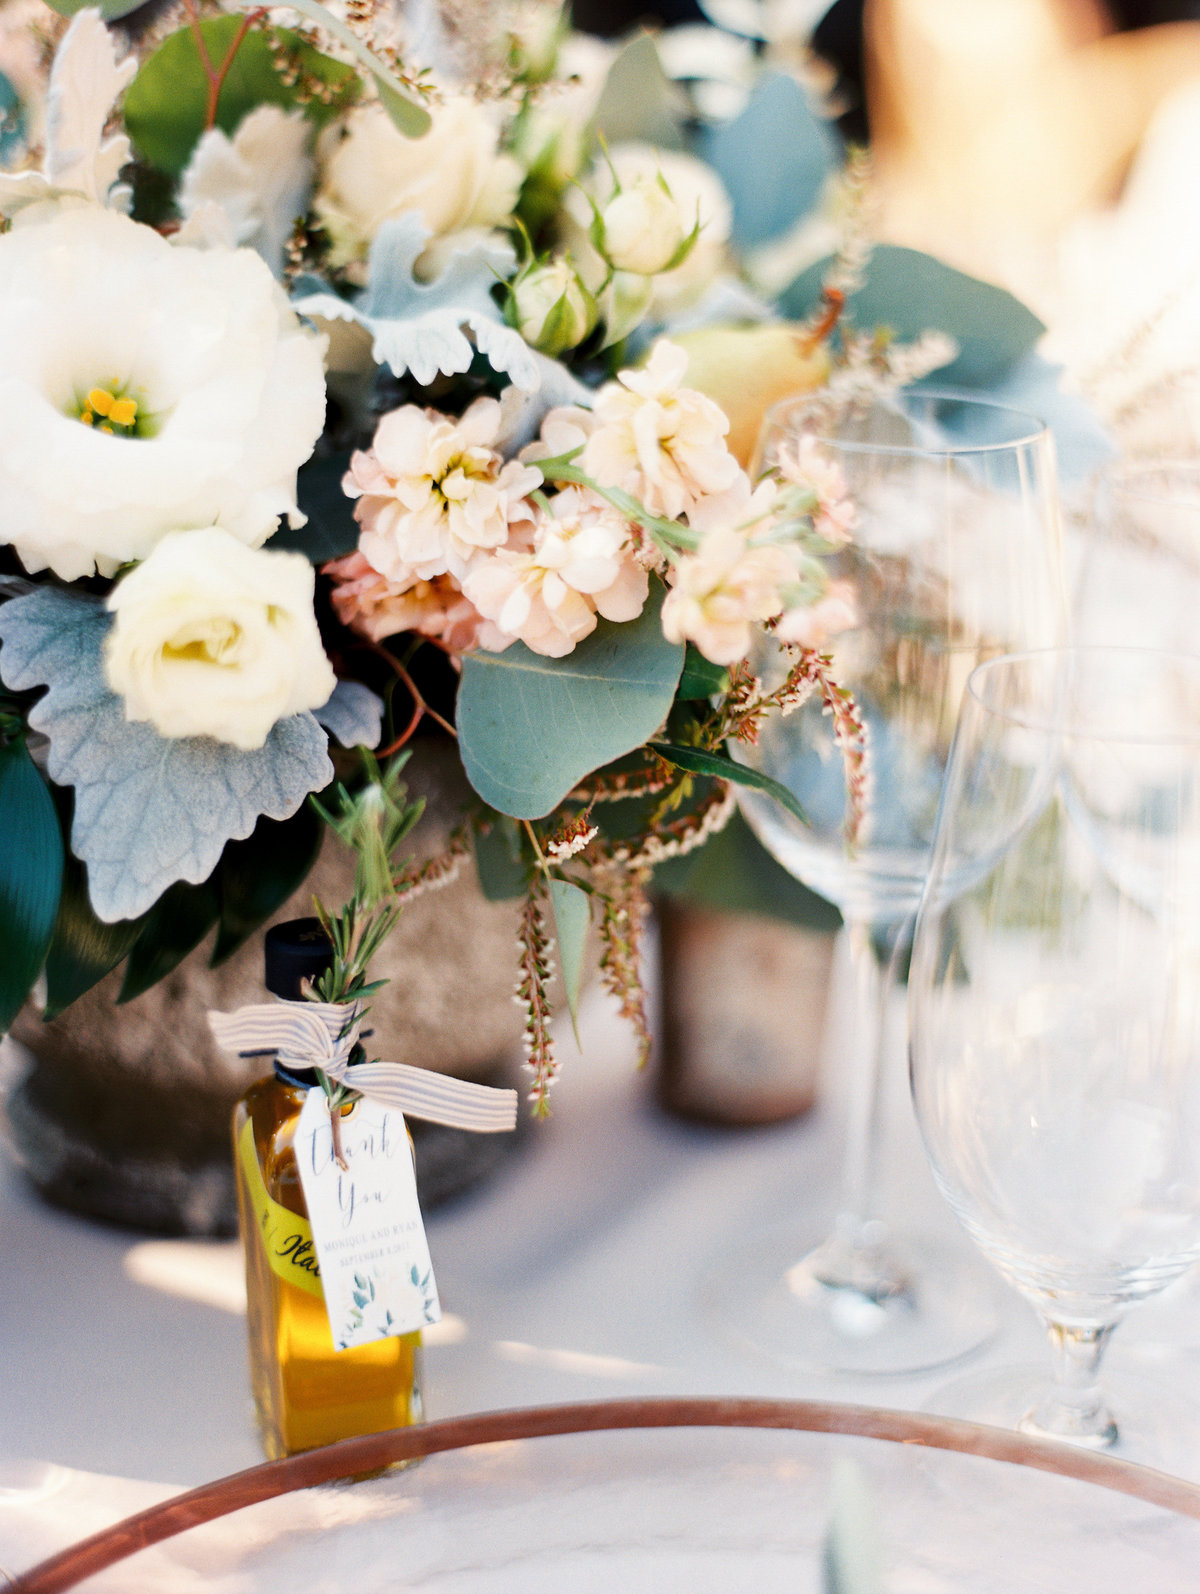 Natalie Bray Studios, Natalie Bray Photography, Southern California Wedding Photographer, Fine Art wedding, Destination Wedding Photographer, Sonoma Wedding Photographer-50